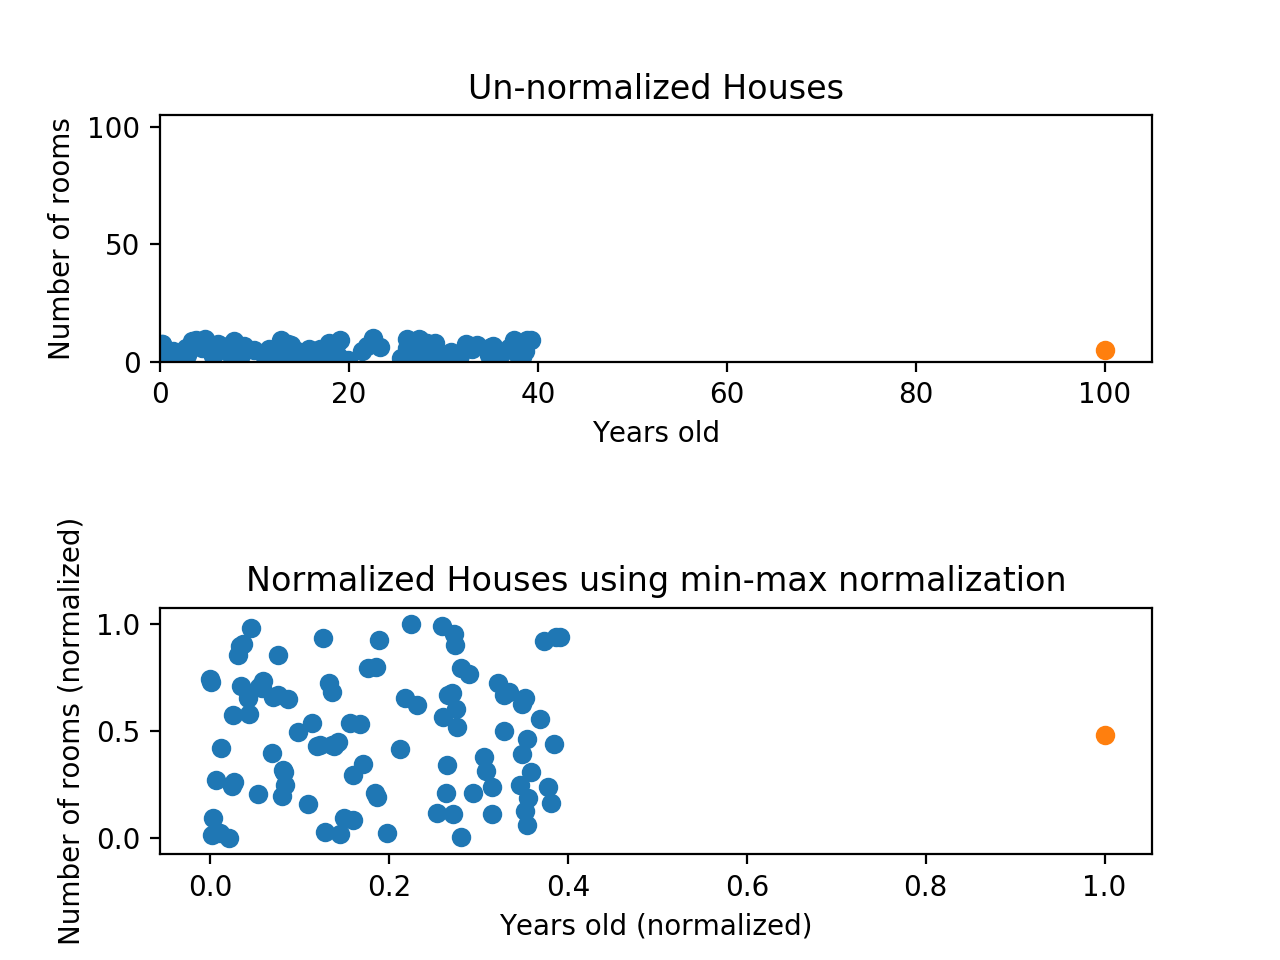 Almost all normalized data points have an x value between 0 and 0.4